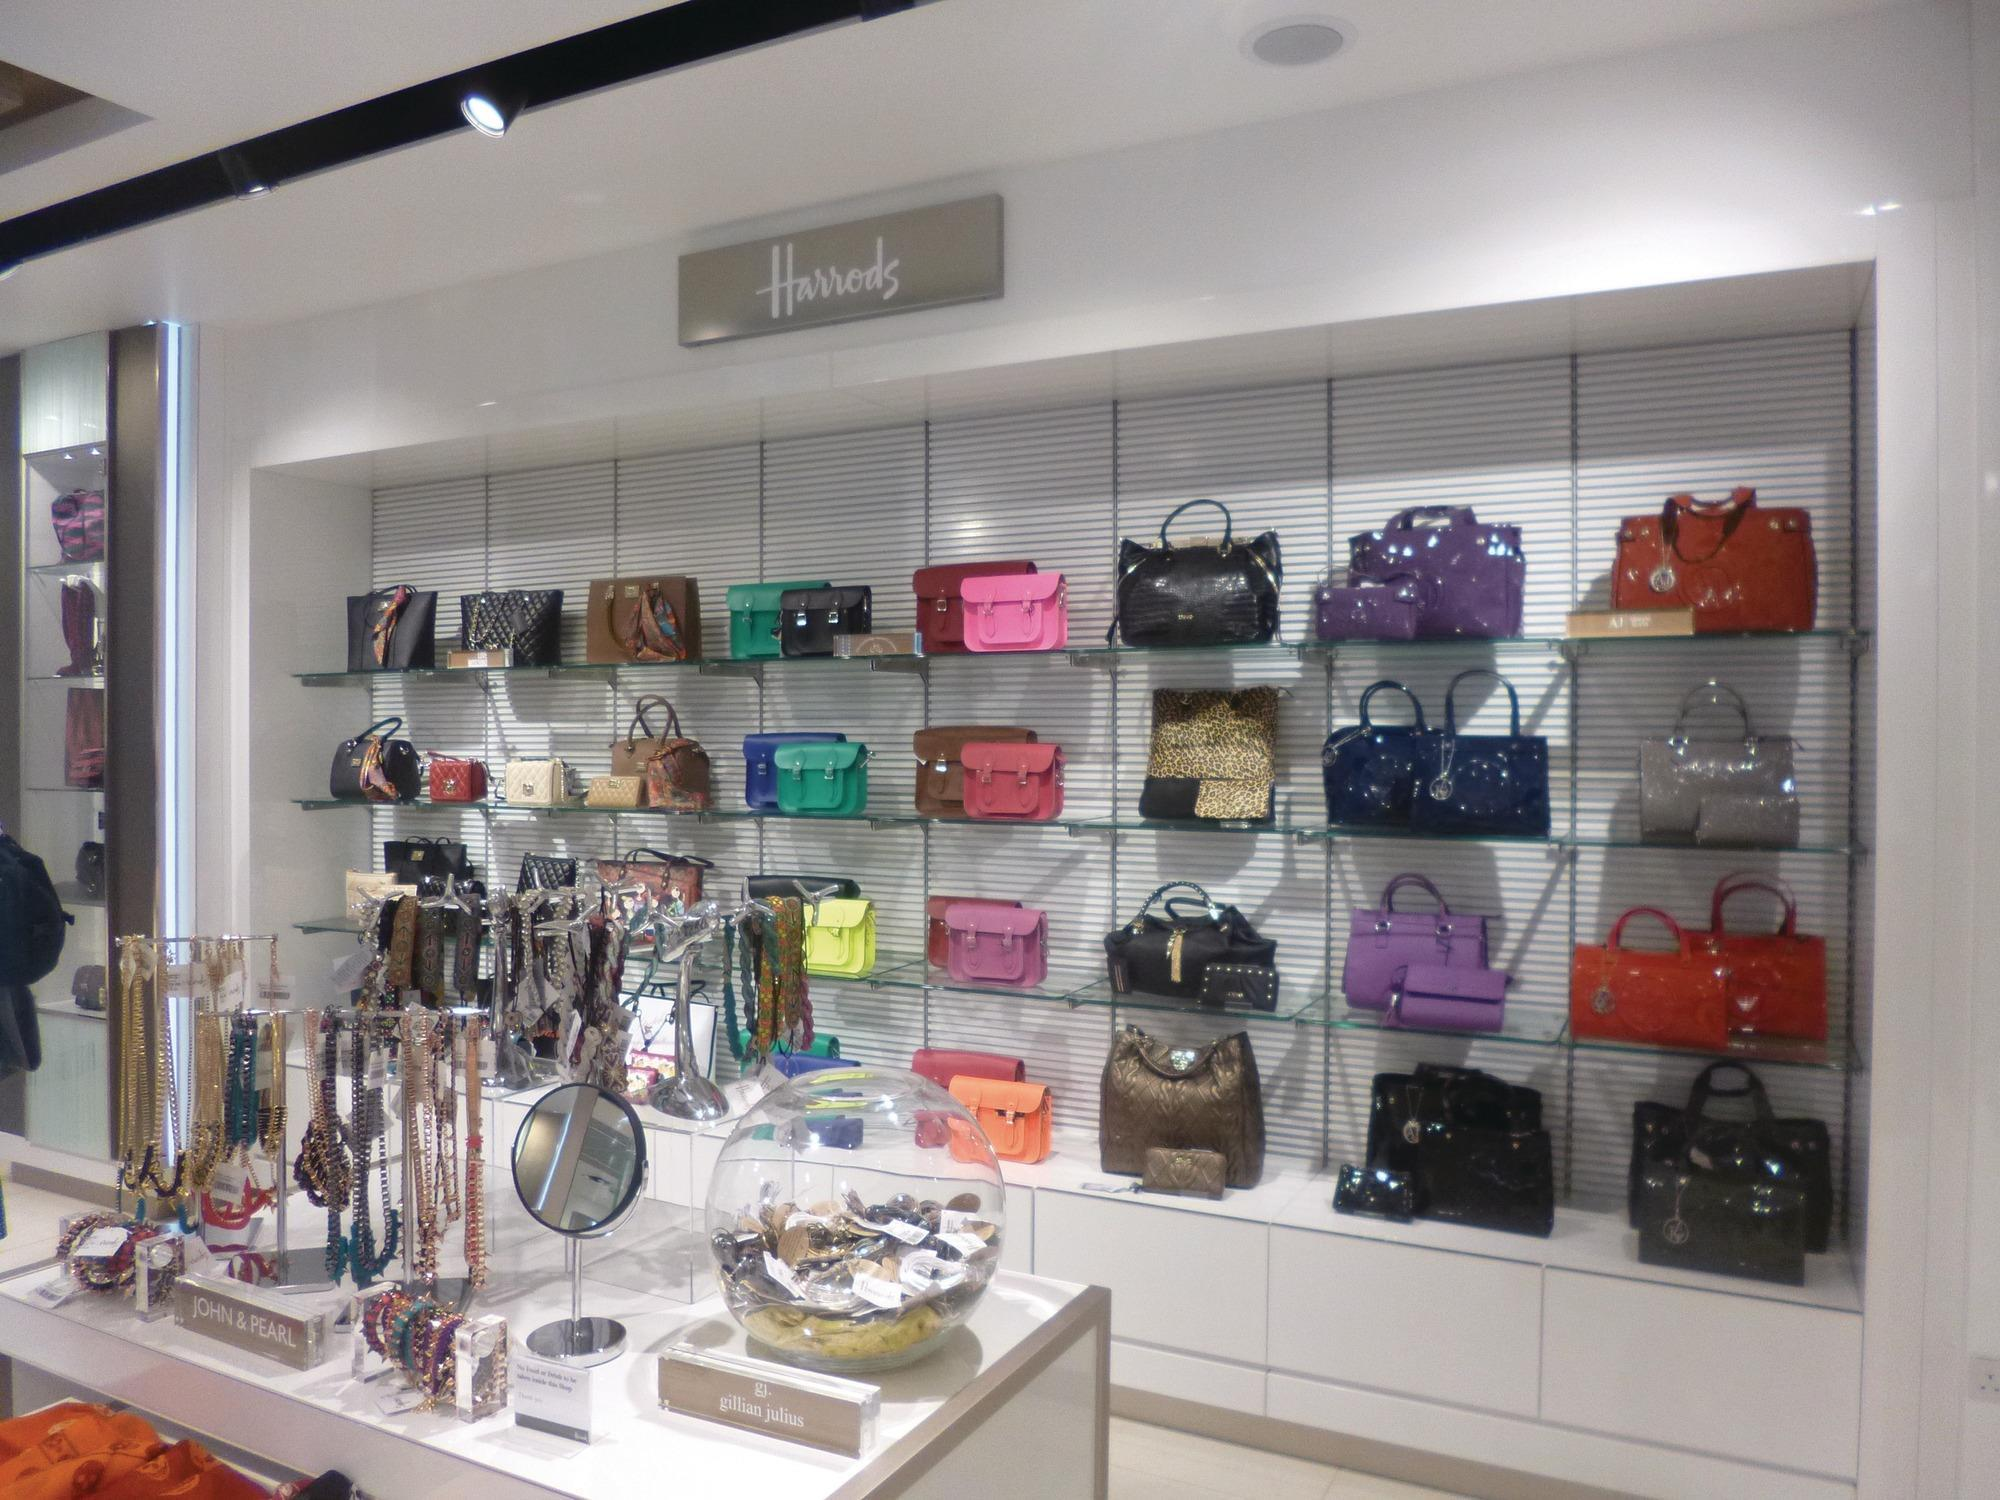 abed2552a Store gallery: Harrods opens it doors to the jetset at Gatwick Airport |  Photo gallery | Retail Week